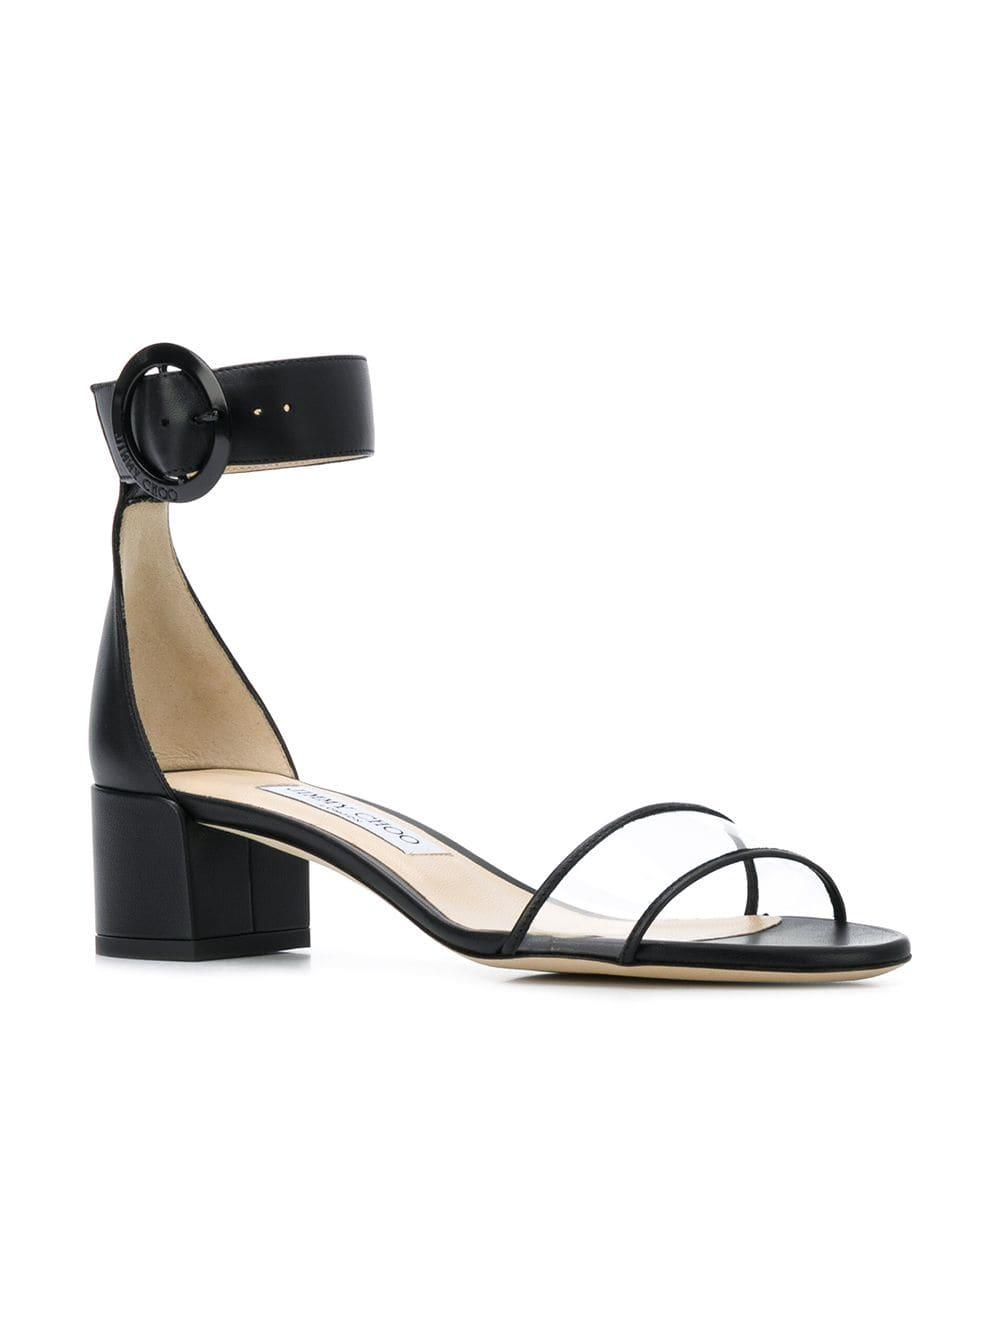 Clothing, Shoes & Accessories Clever Rrp€125 Alberto Guardiani Slingback Sandals Eu37 Uk4 Leather Lining Wedge Tartan